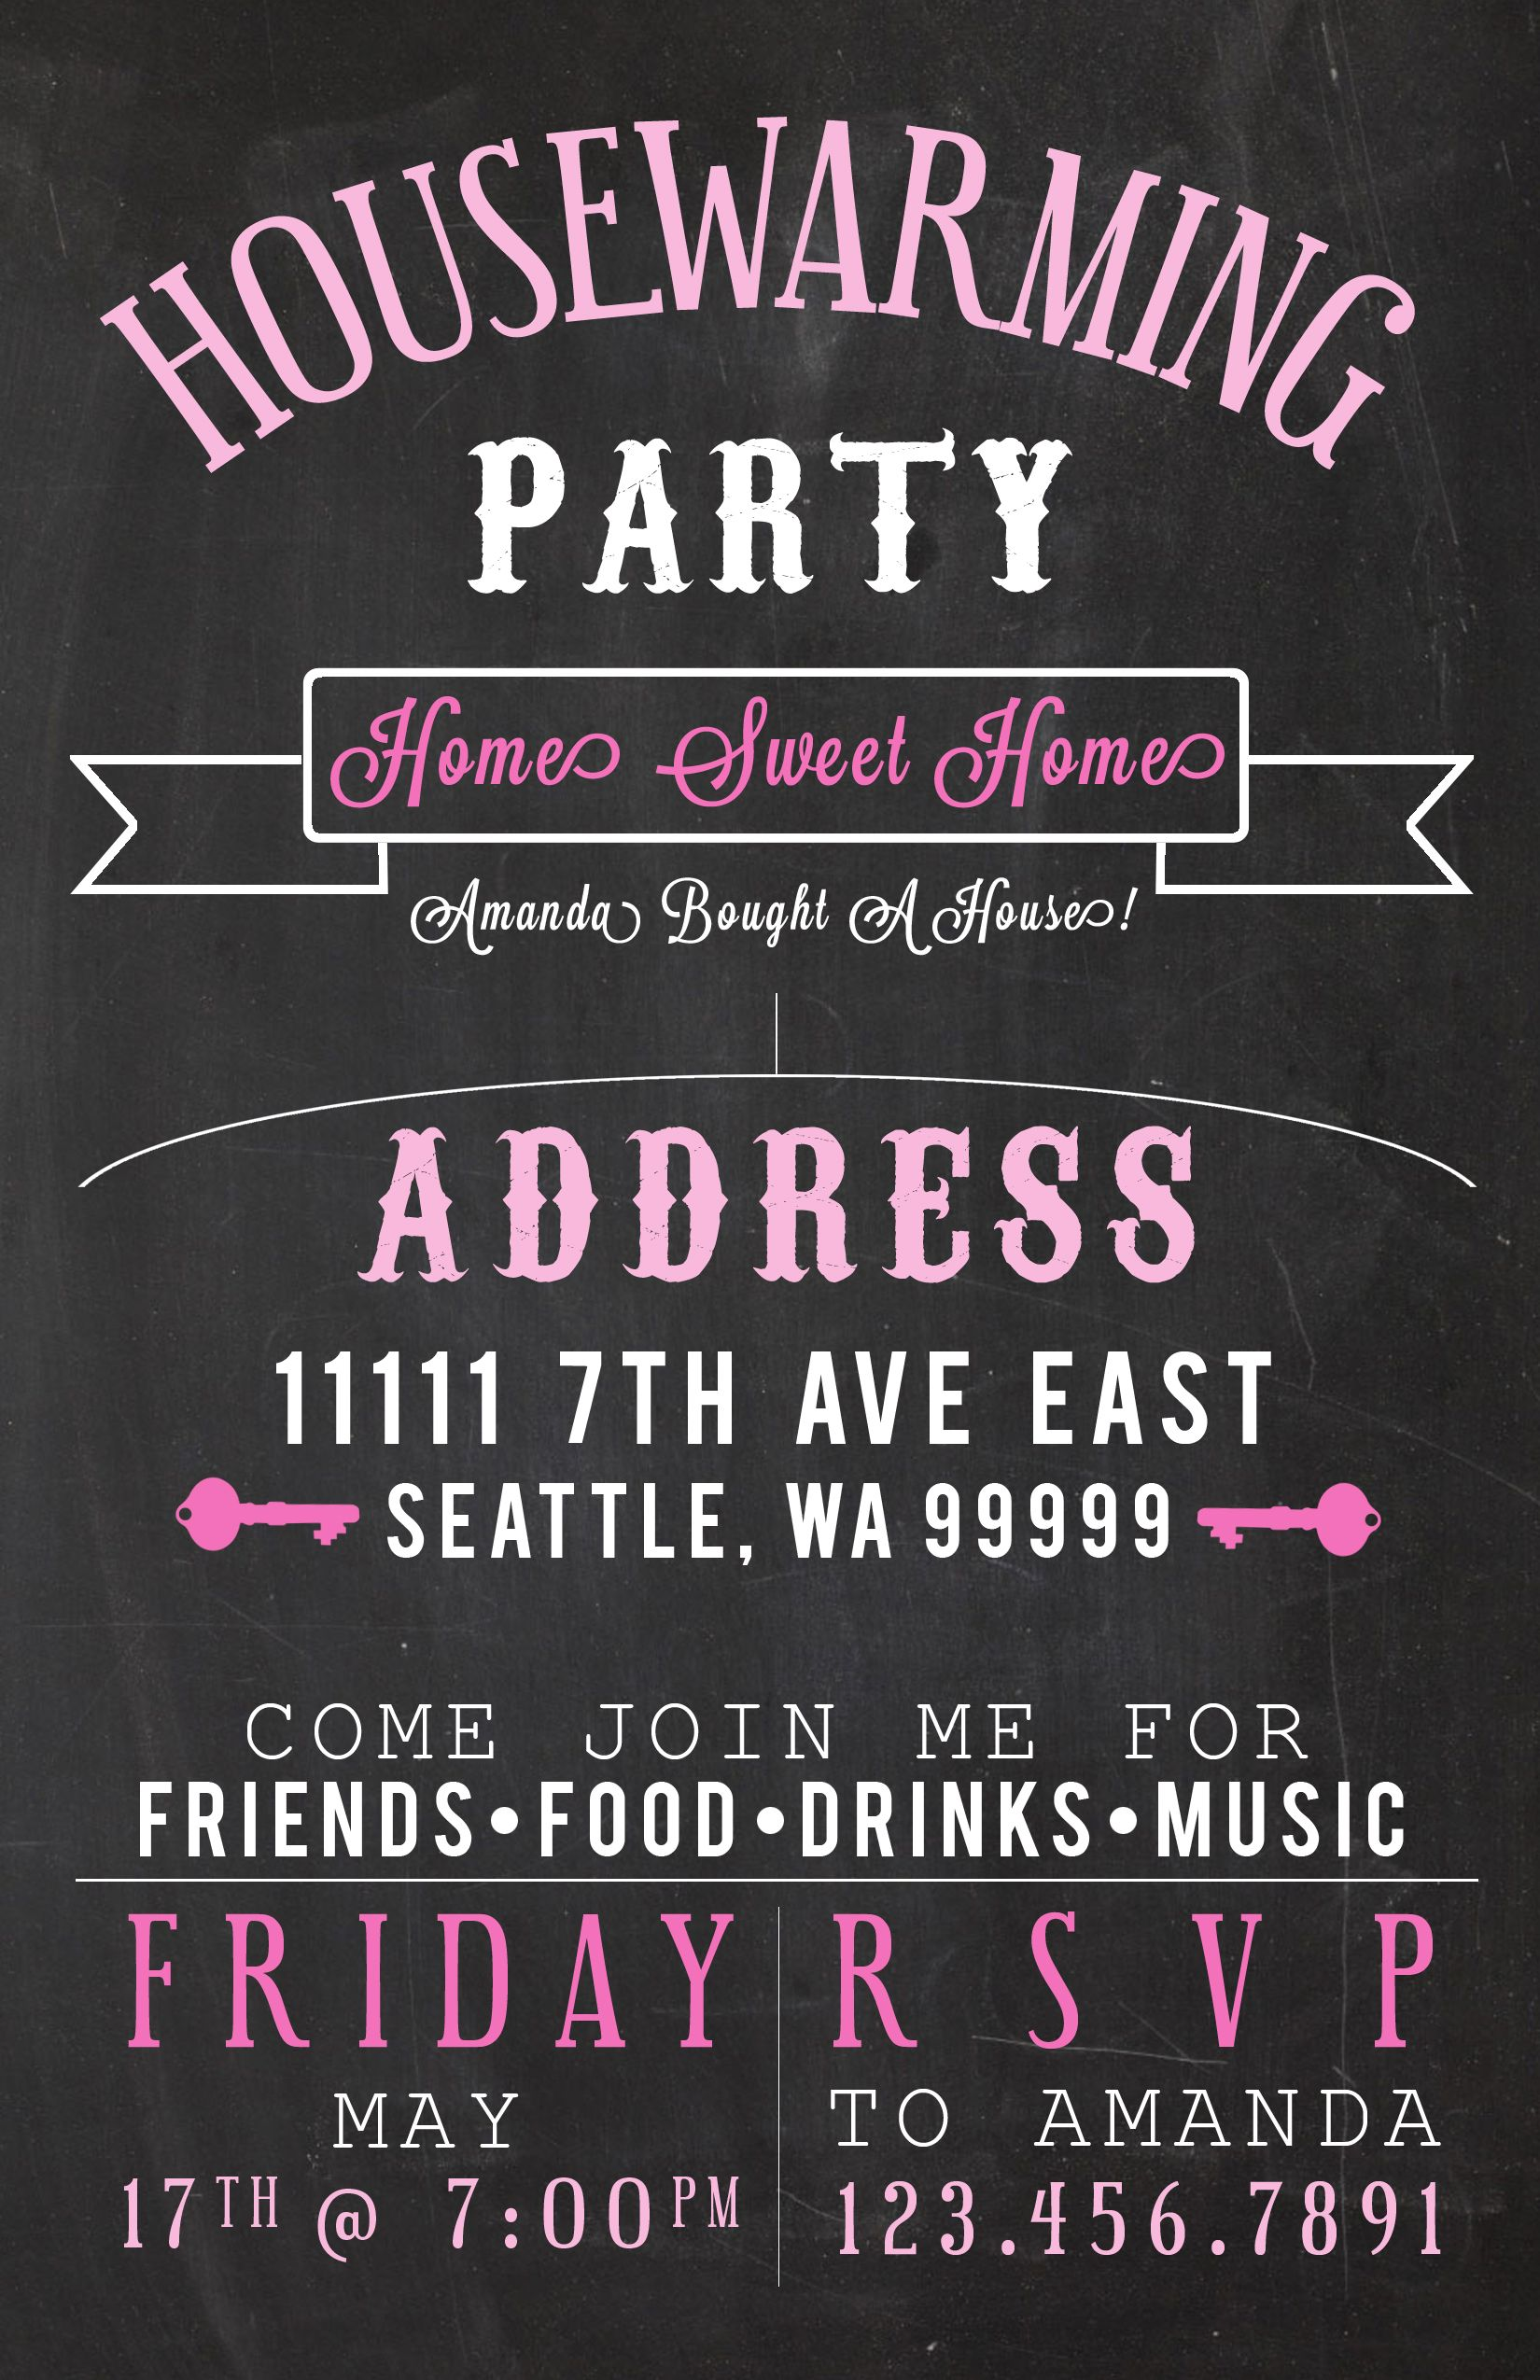 Housewarming Present For Friend Party Planning Starts With The Invitations I Will Design